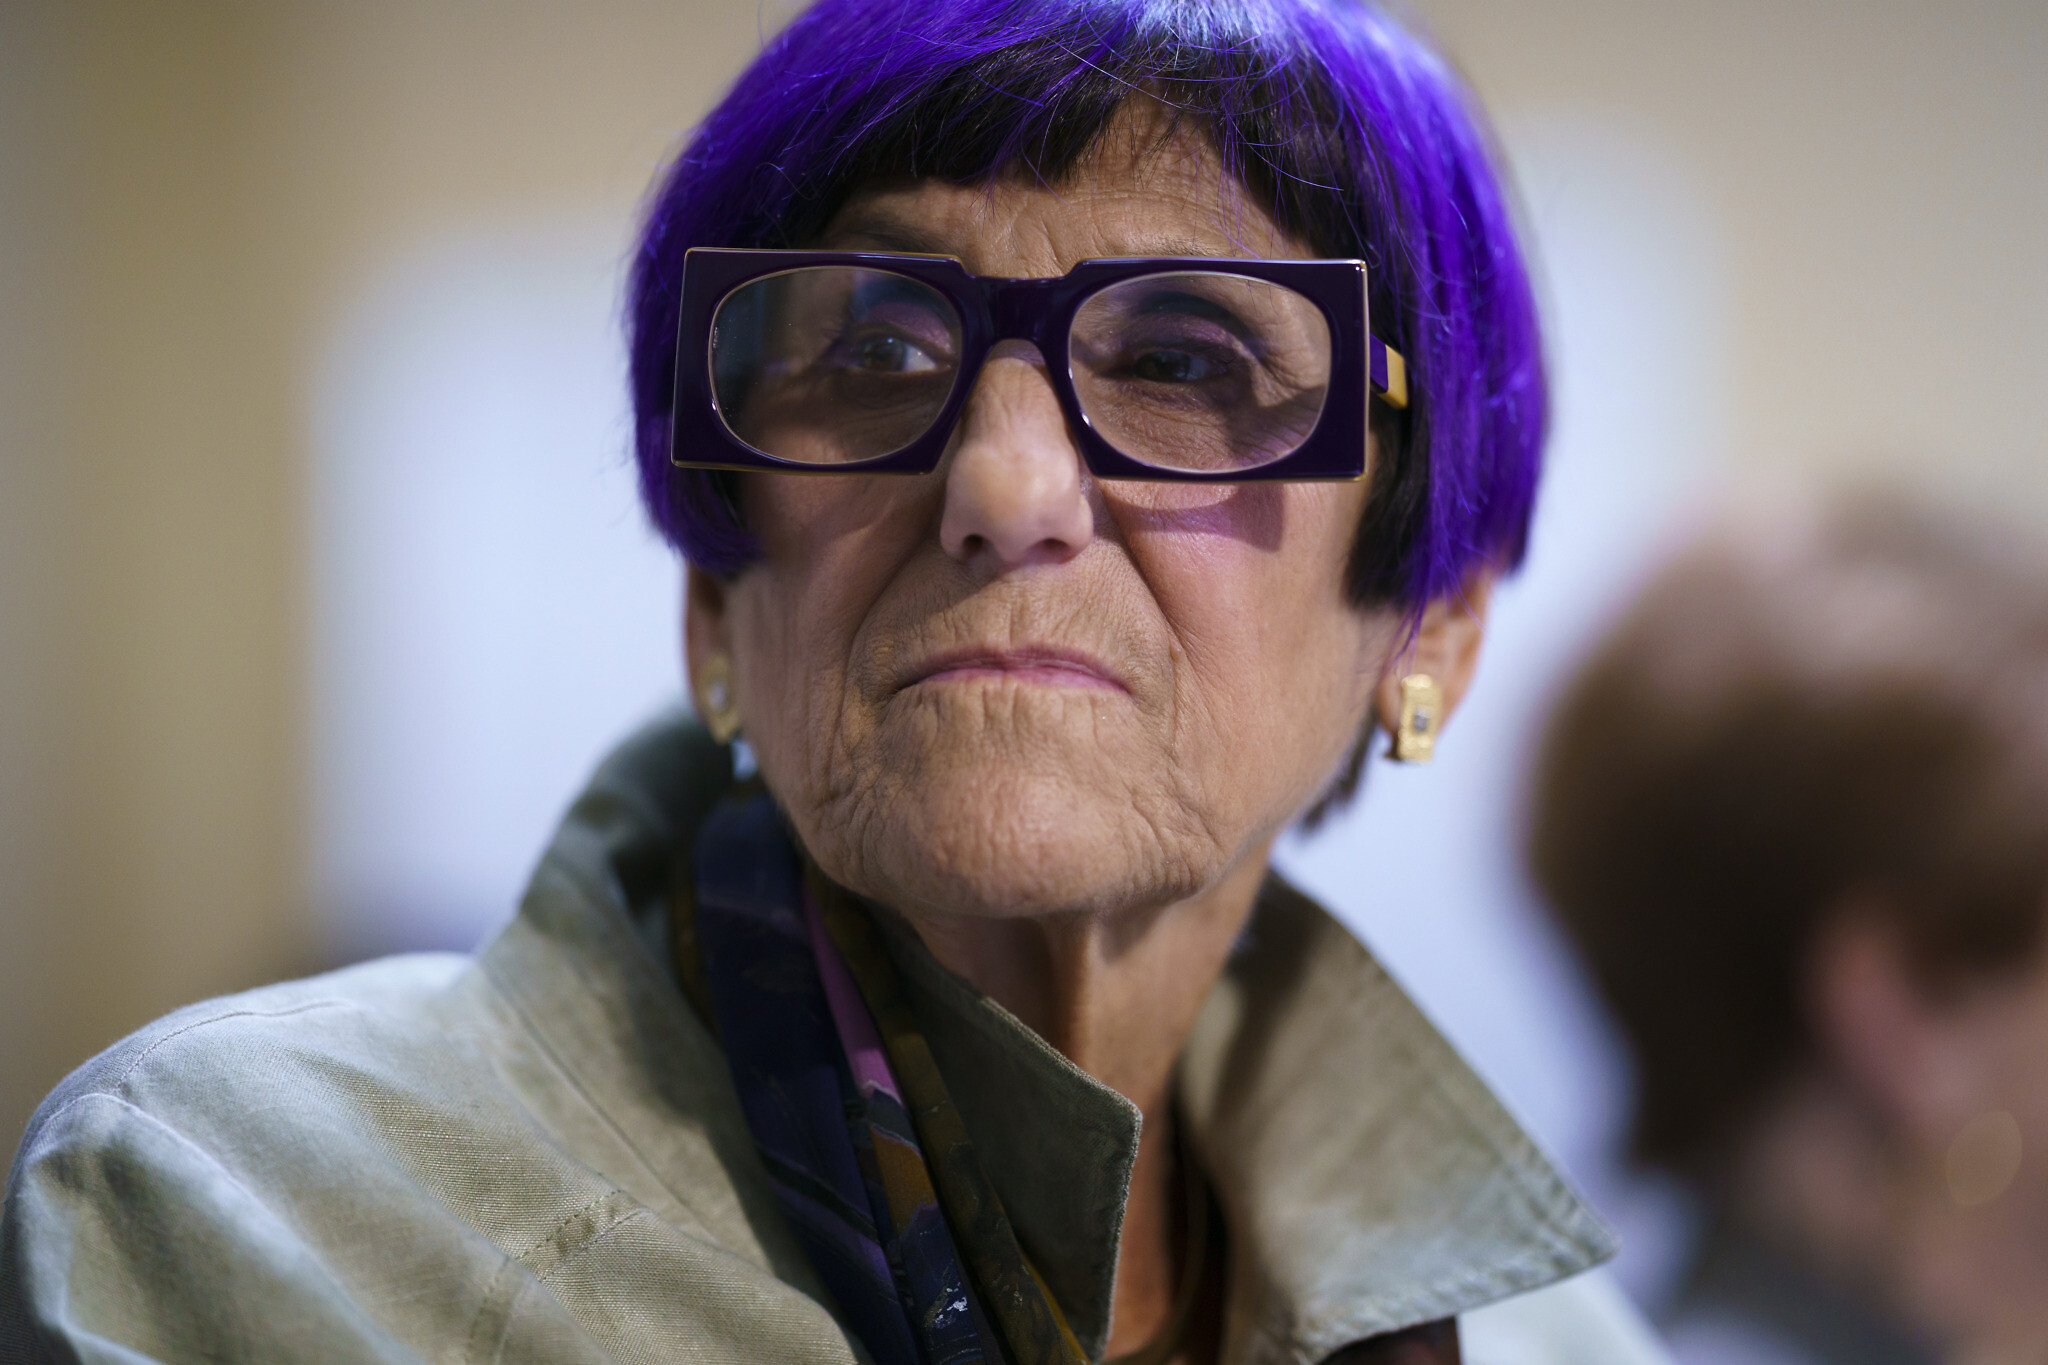 House Appropriations Committee Chair Rosa DeLauro, D-Conn., fields questions about the politics of the federal debt in front of the House Rules Committee at the Capitol in Washington, September 21, 2021. (AP Photo/J. Scott Applewhite)